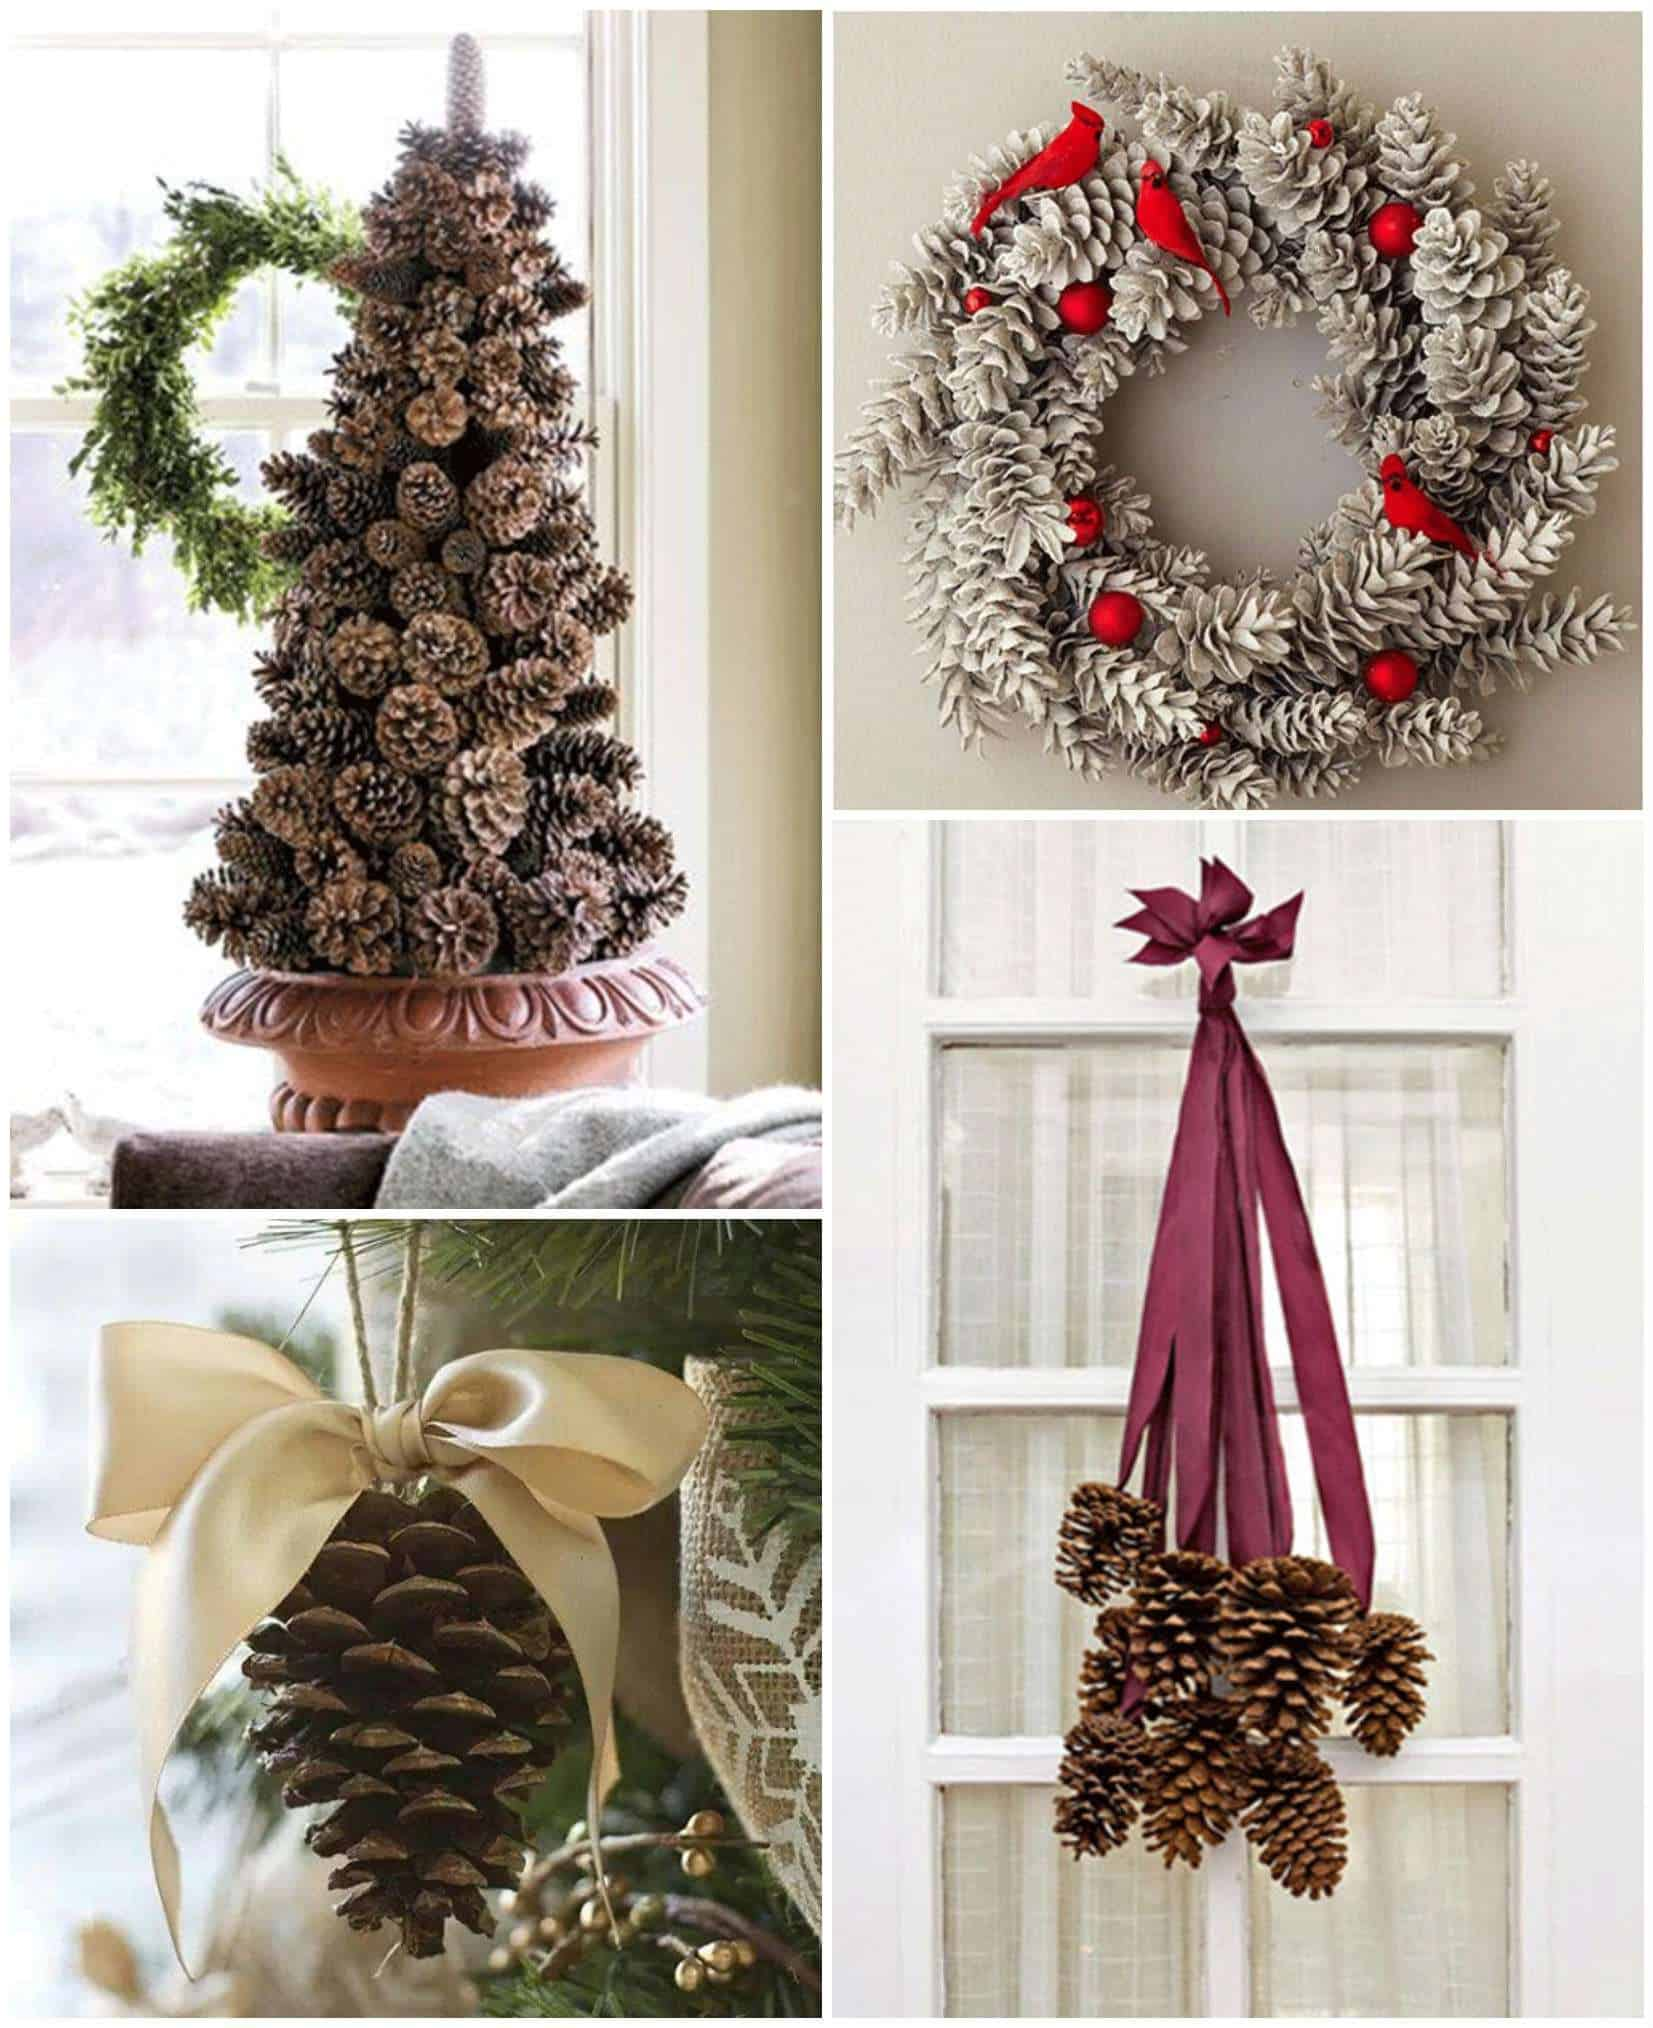 Diy Christmas Décor Ideas Using Pine Cones • Recyclart